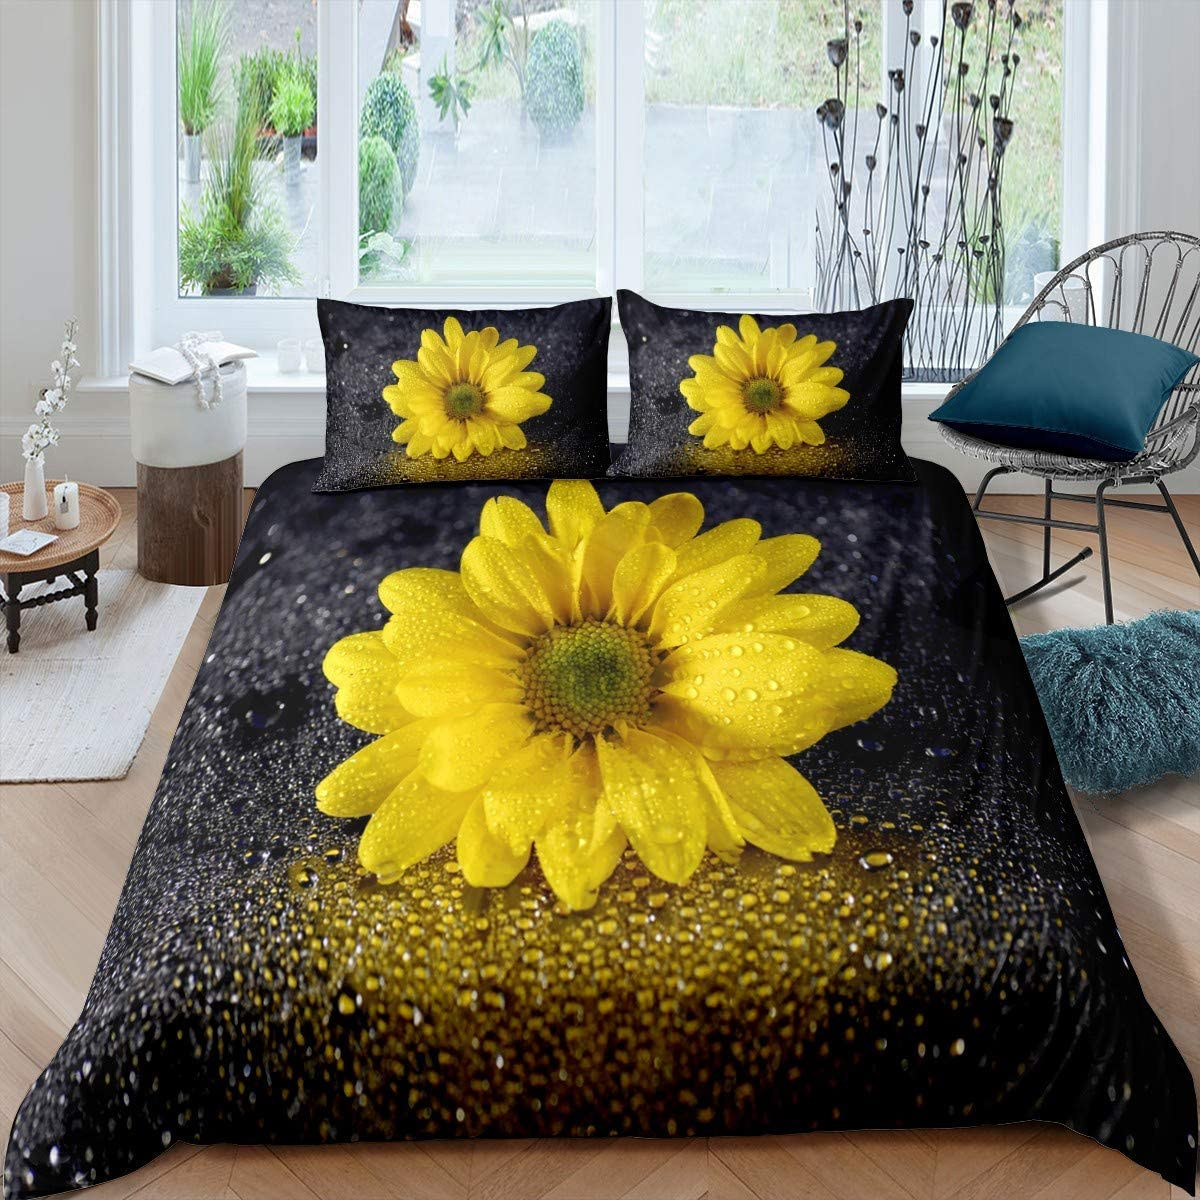 Yellow Floral Duvet Cover Full 3D Sunflower Bedding Set Summer Colorful Nature Art Print Comforter Cover, Countryside Garden Style Decor Quilt Set Modern Style for Women Kids Girls with Zipper&Ties